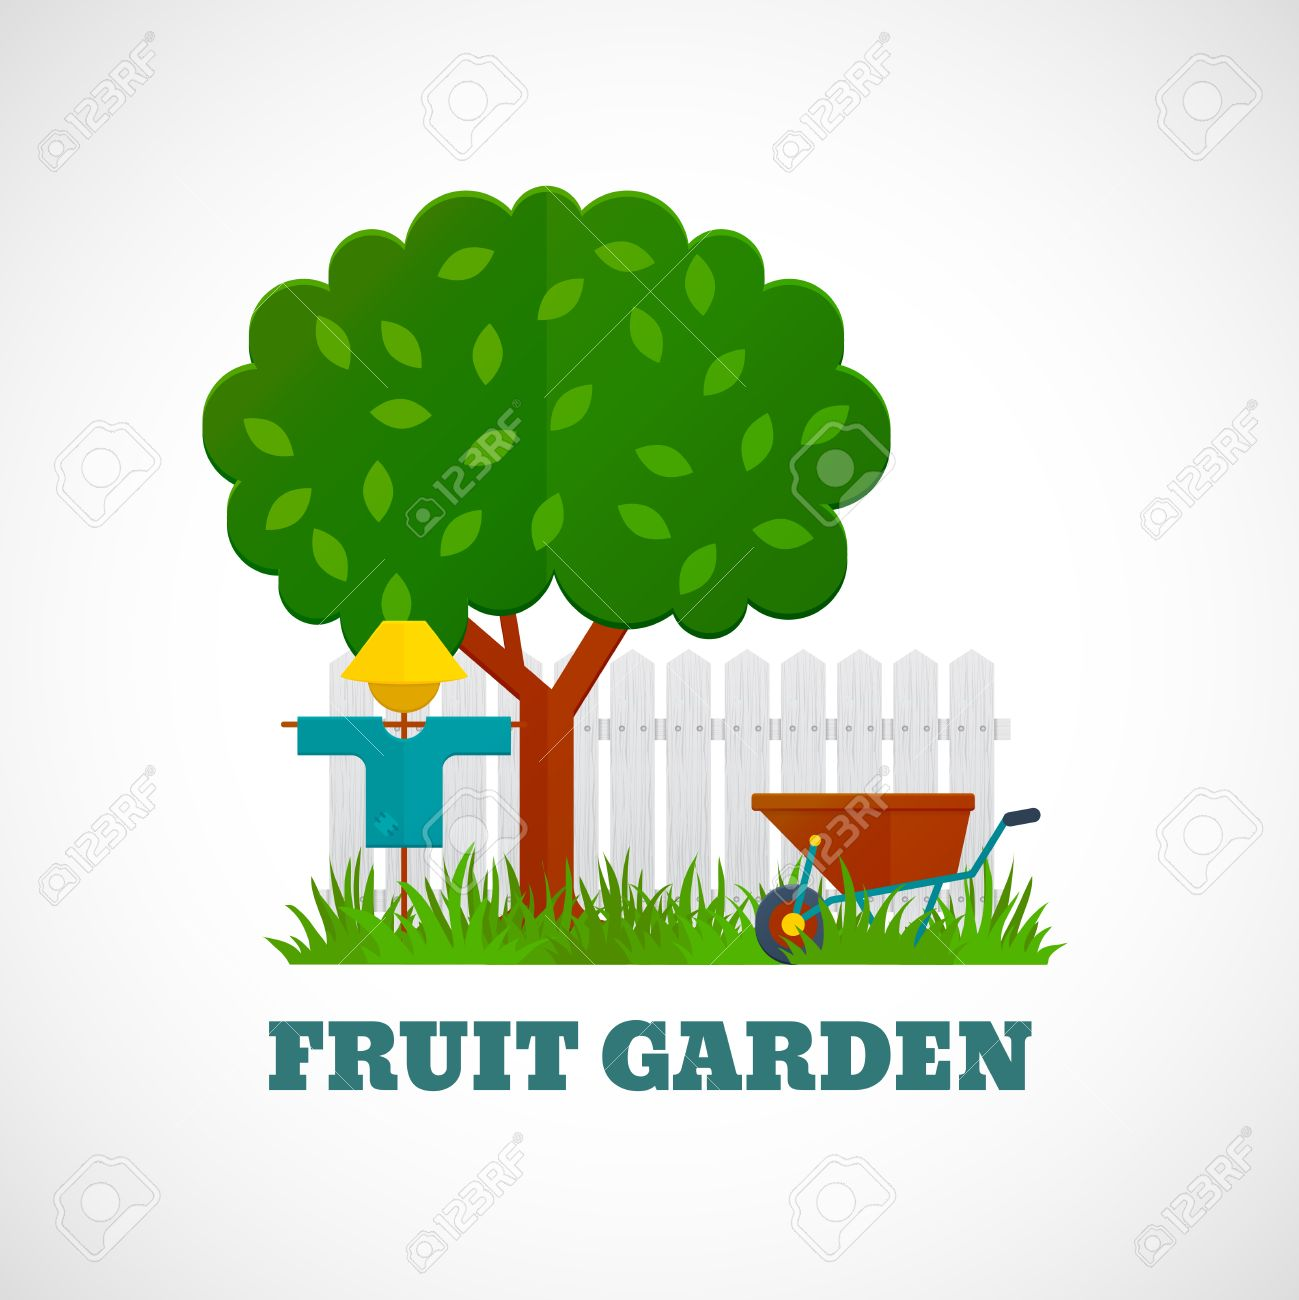 Scarecrow with tree clipart banner black and white library Fruit Garden Poster With Tree Scarecrow Wheelbarrow On The Lawn ... banner black and white library